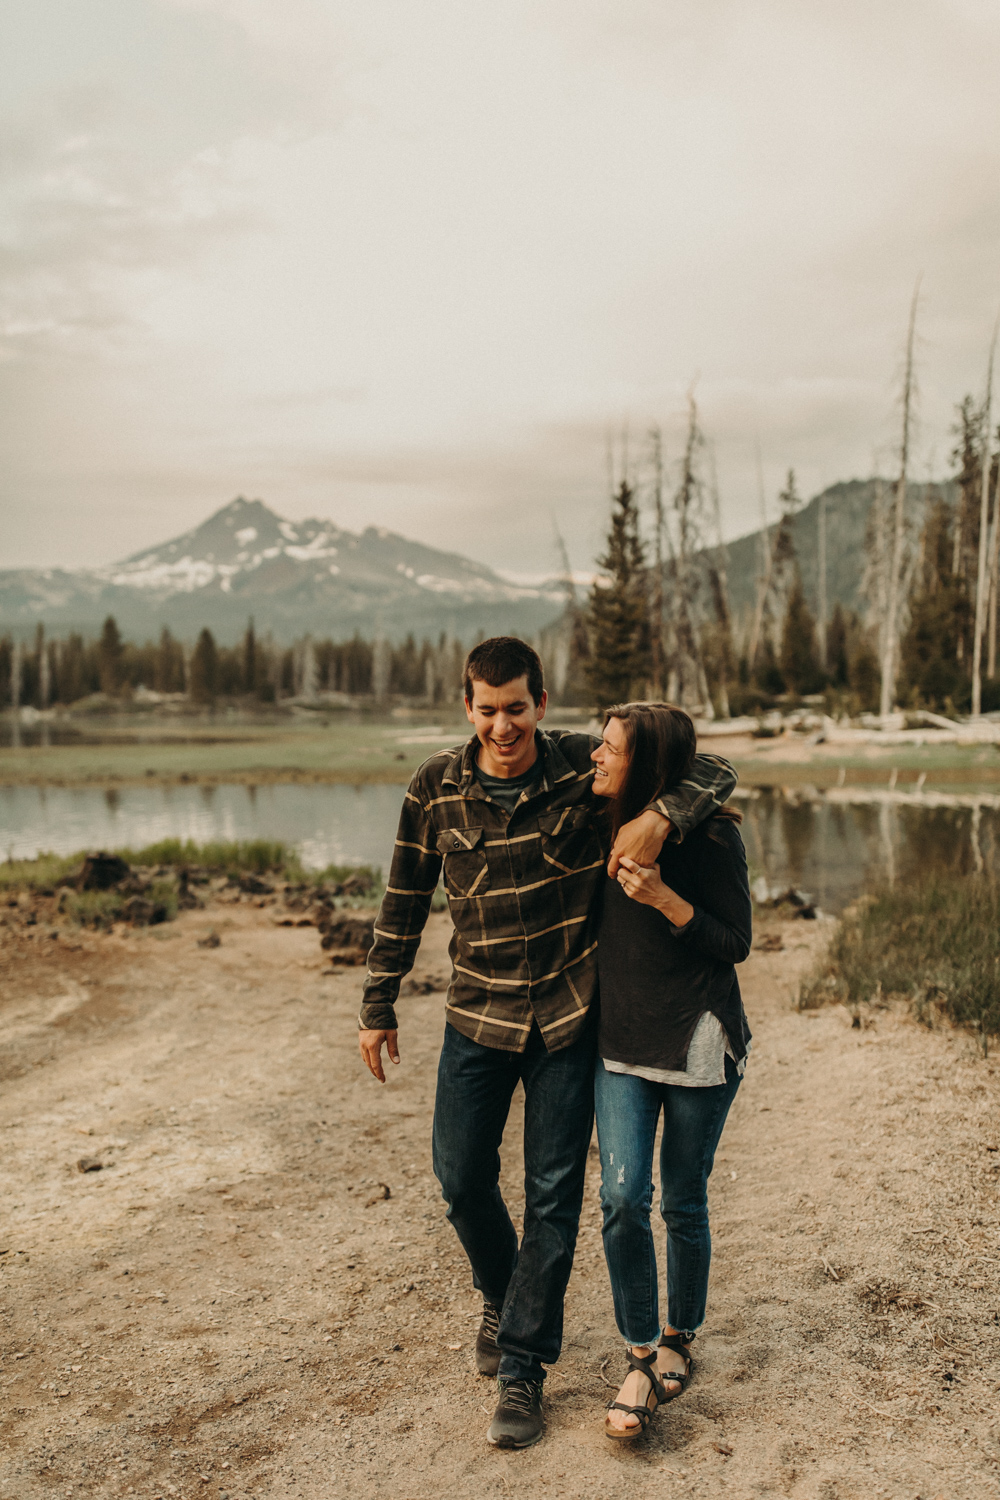 bend-oregon-engagement-photos-20180619-079A8431.jpg